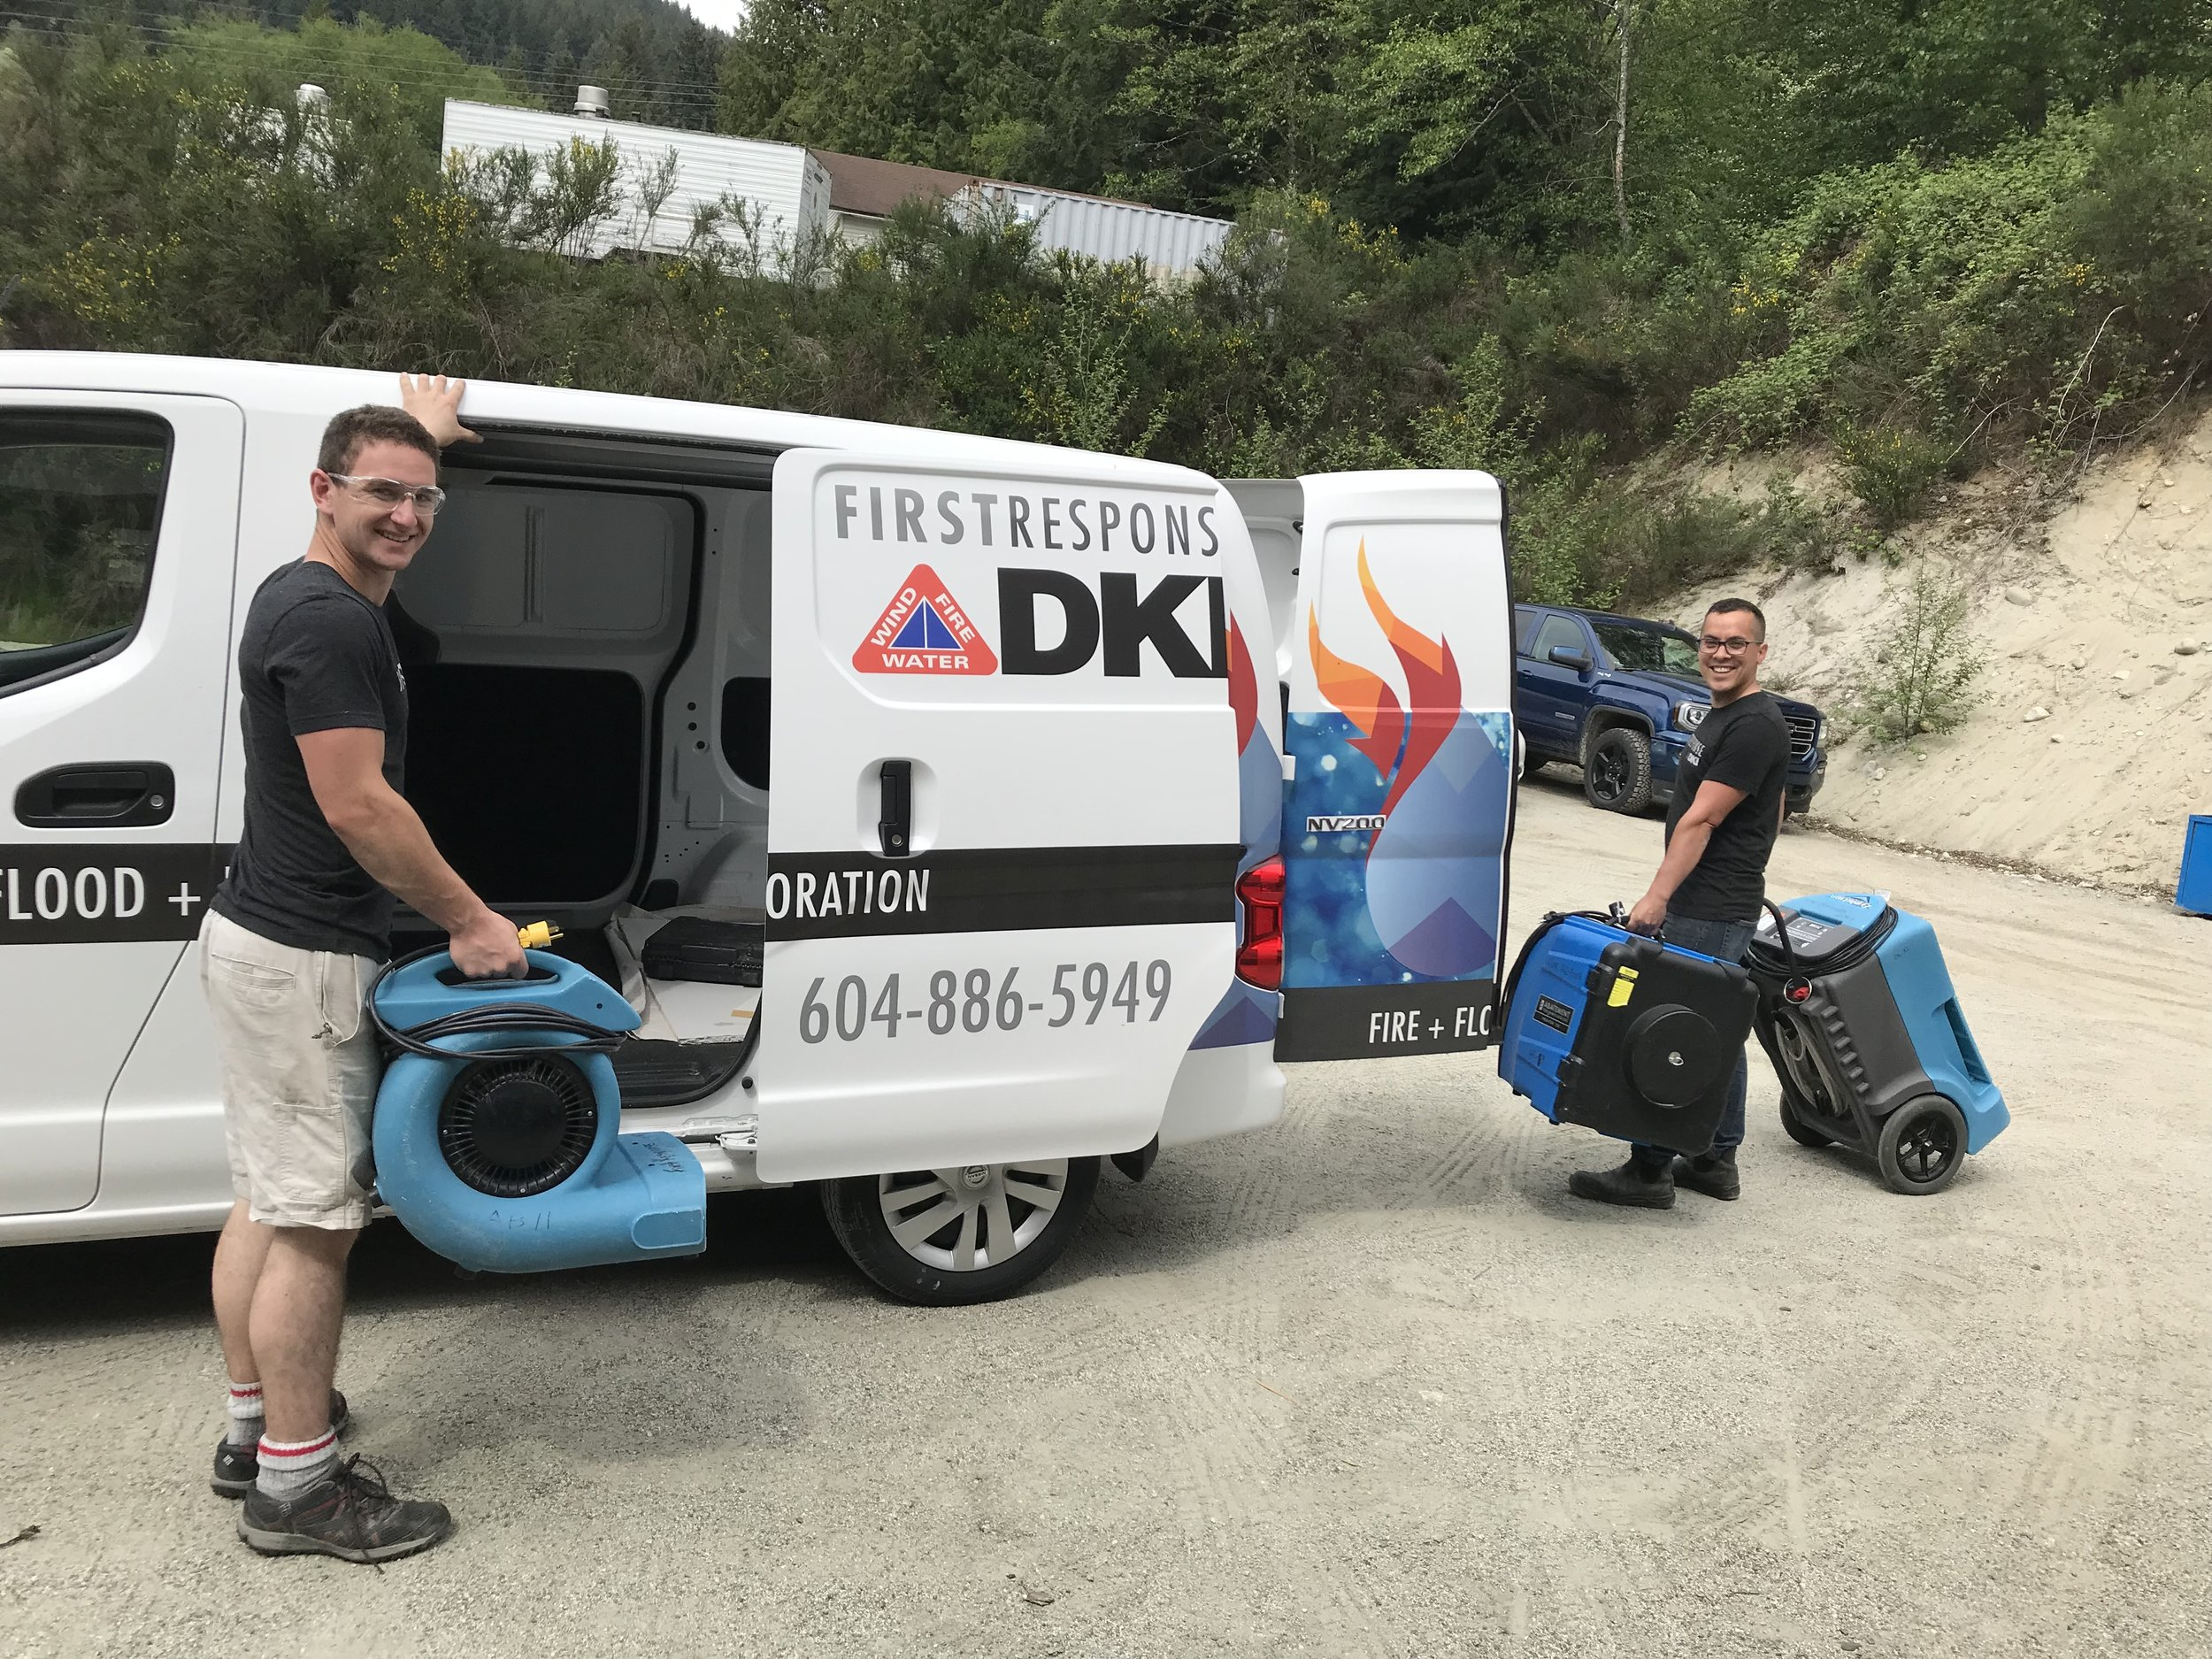 Wind. Fire. Water. DKI Canada has us, and our customers, covered. - May 16, 2018You've probably noticed the DKI triangle on the First Response logo, trucks and anywhere you see the brand. First Reponses wears the DKI logo proudly but many don't know the background behind the affiliation. Get to know DKI...Read more.